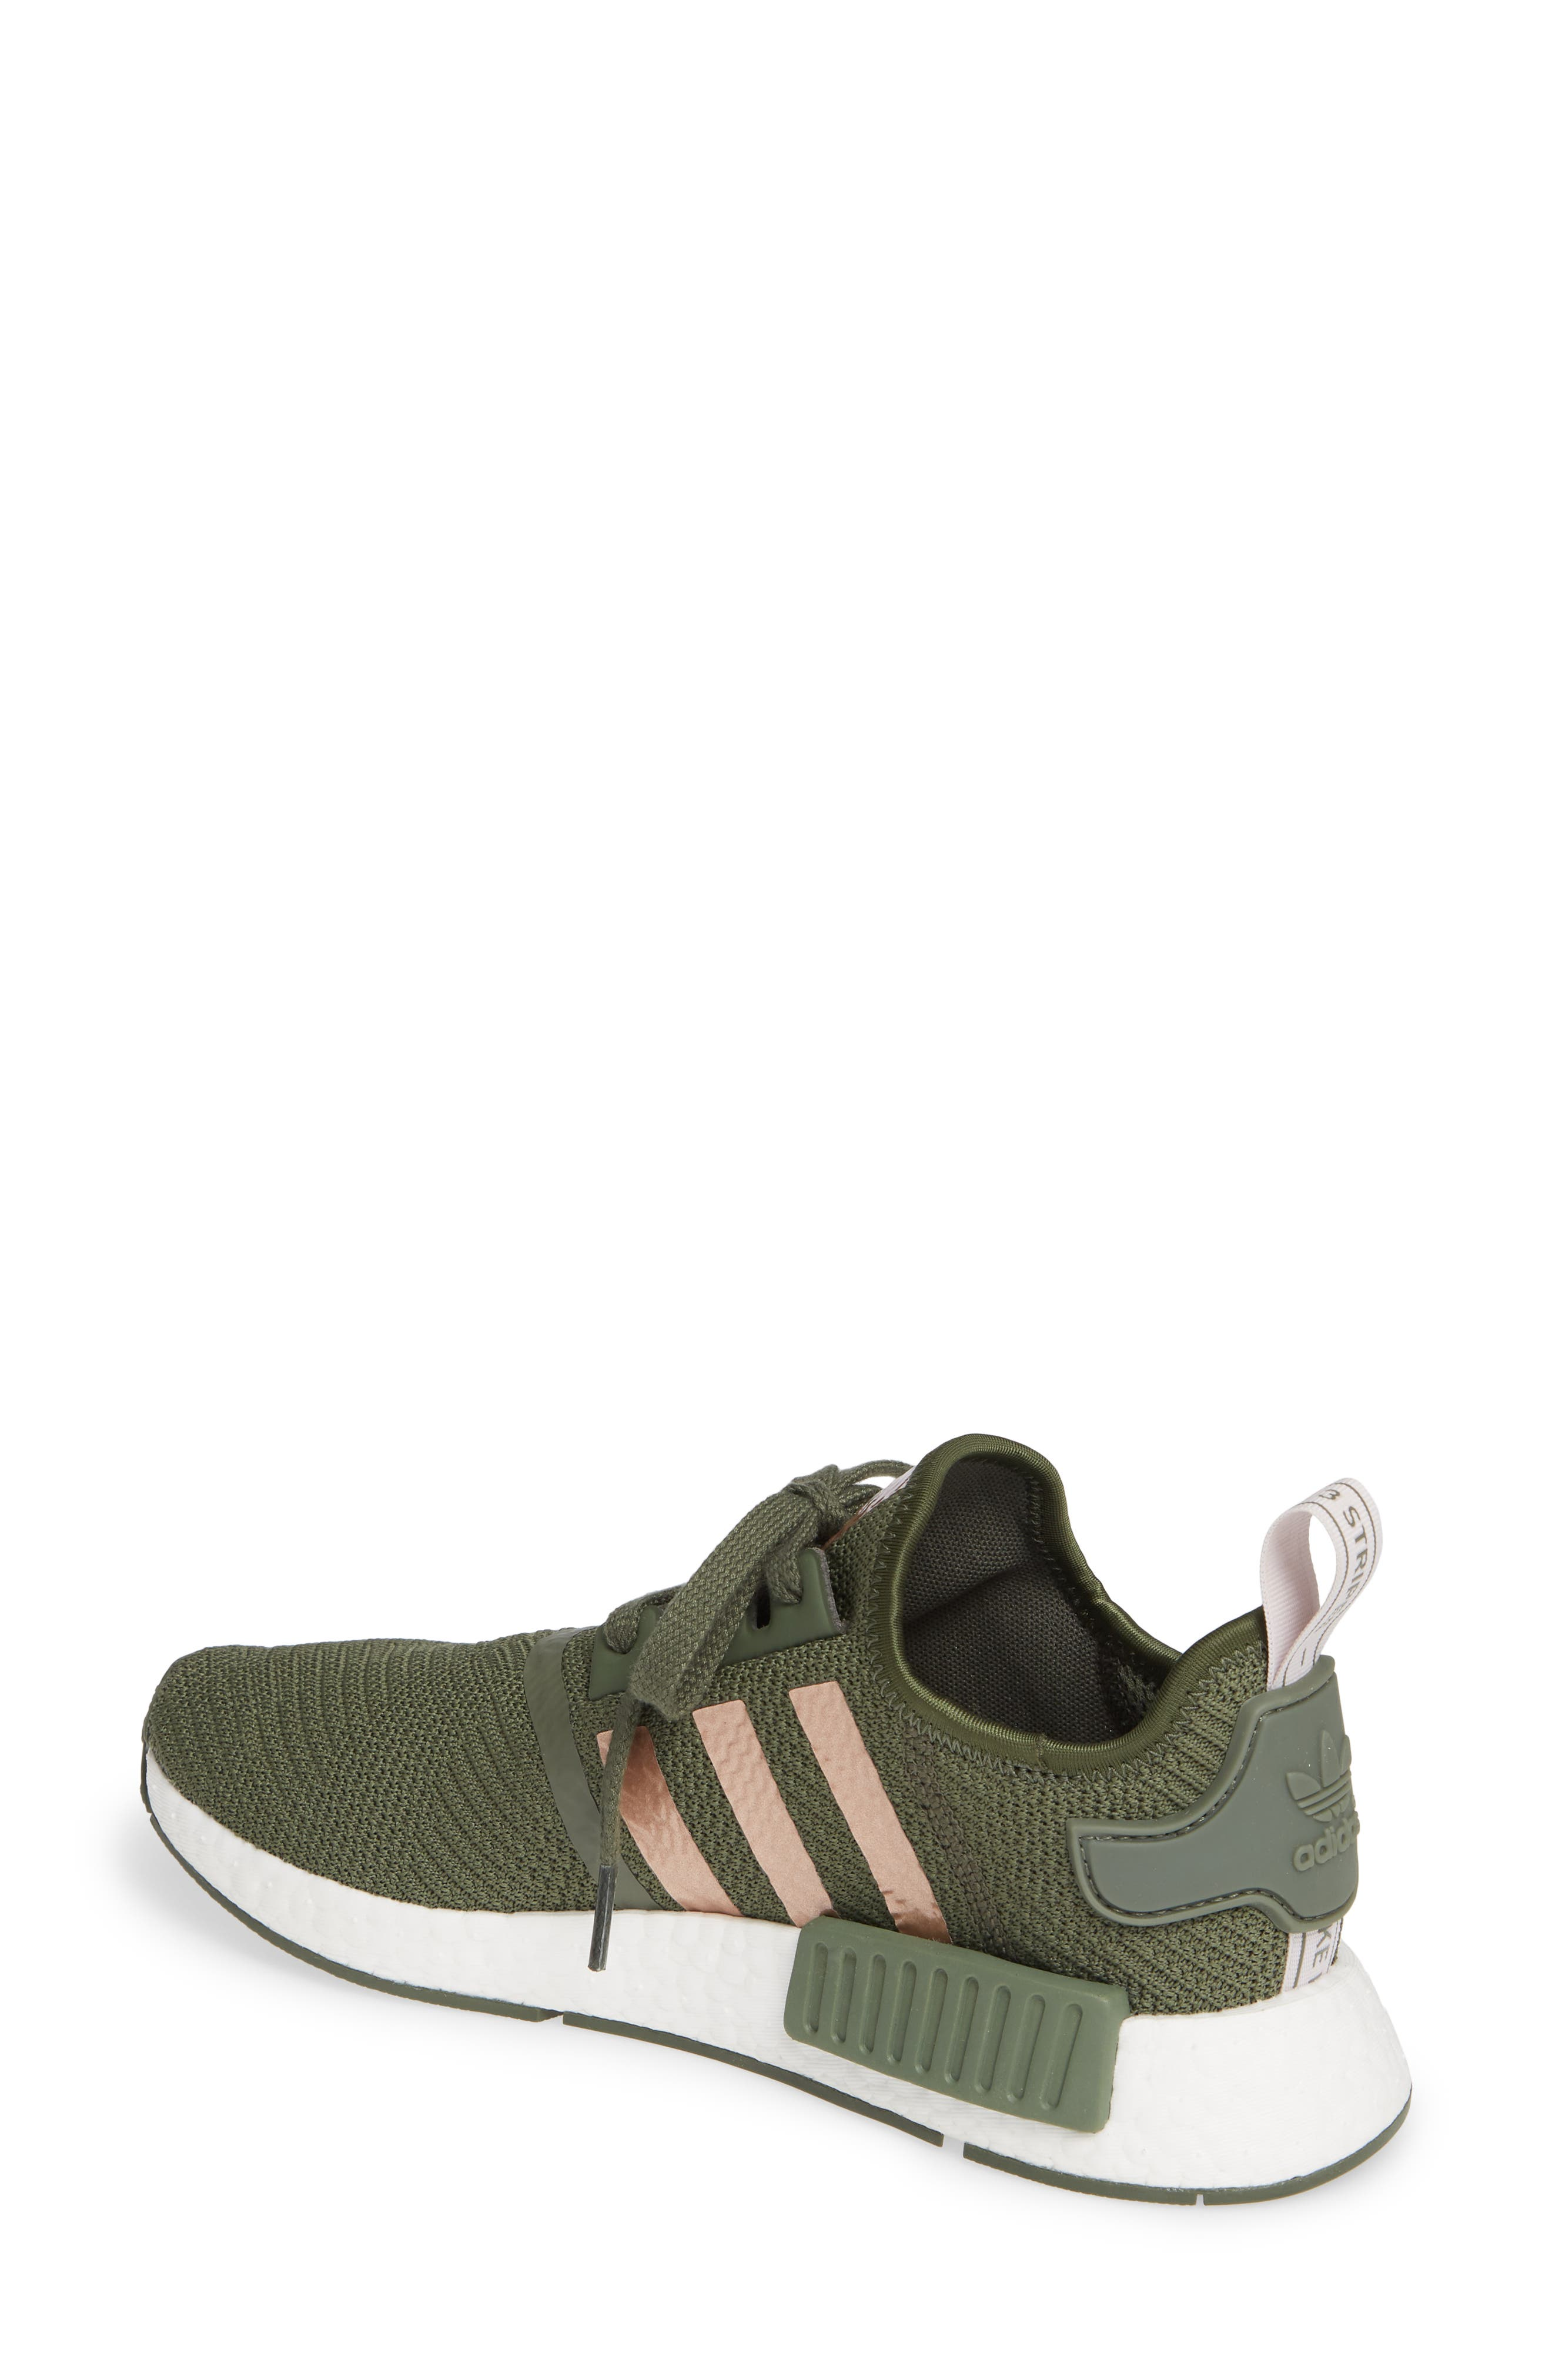 NMD R1 Athletic Shoe,                             Alternate thumbnail 2, color,                             BASE GREEN/ SUPER POP